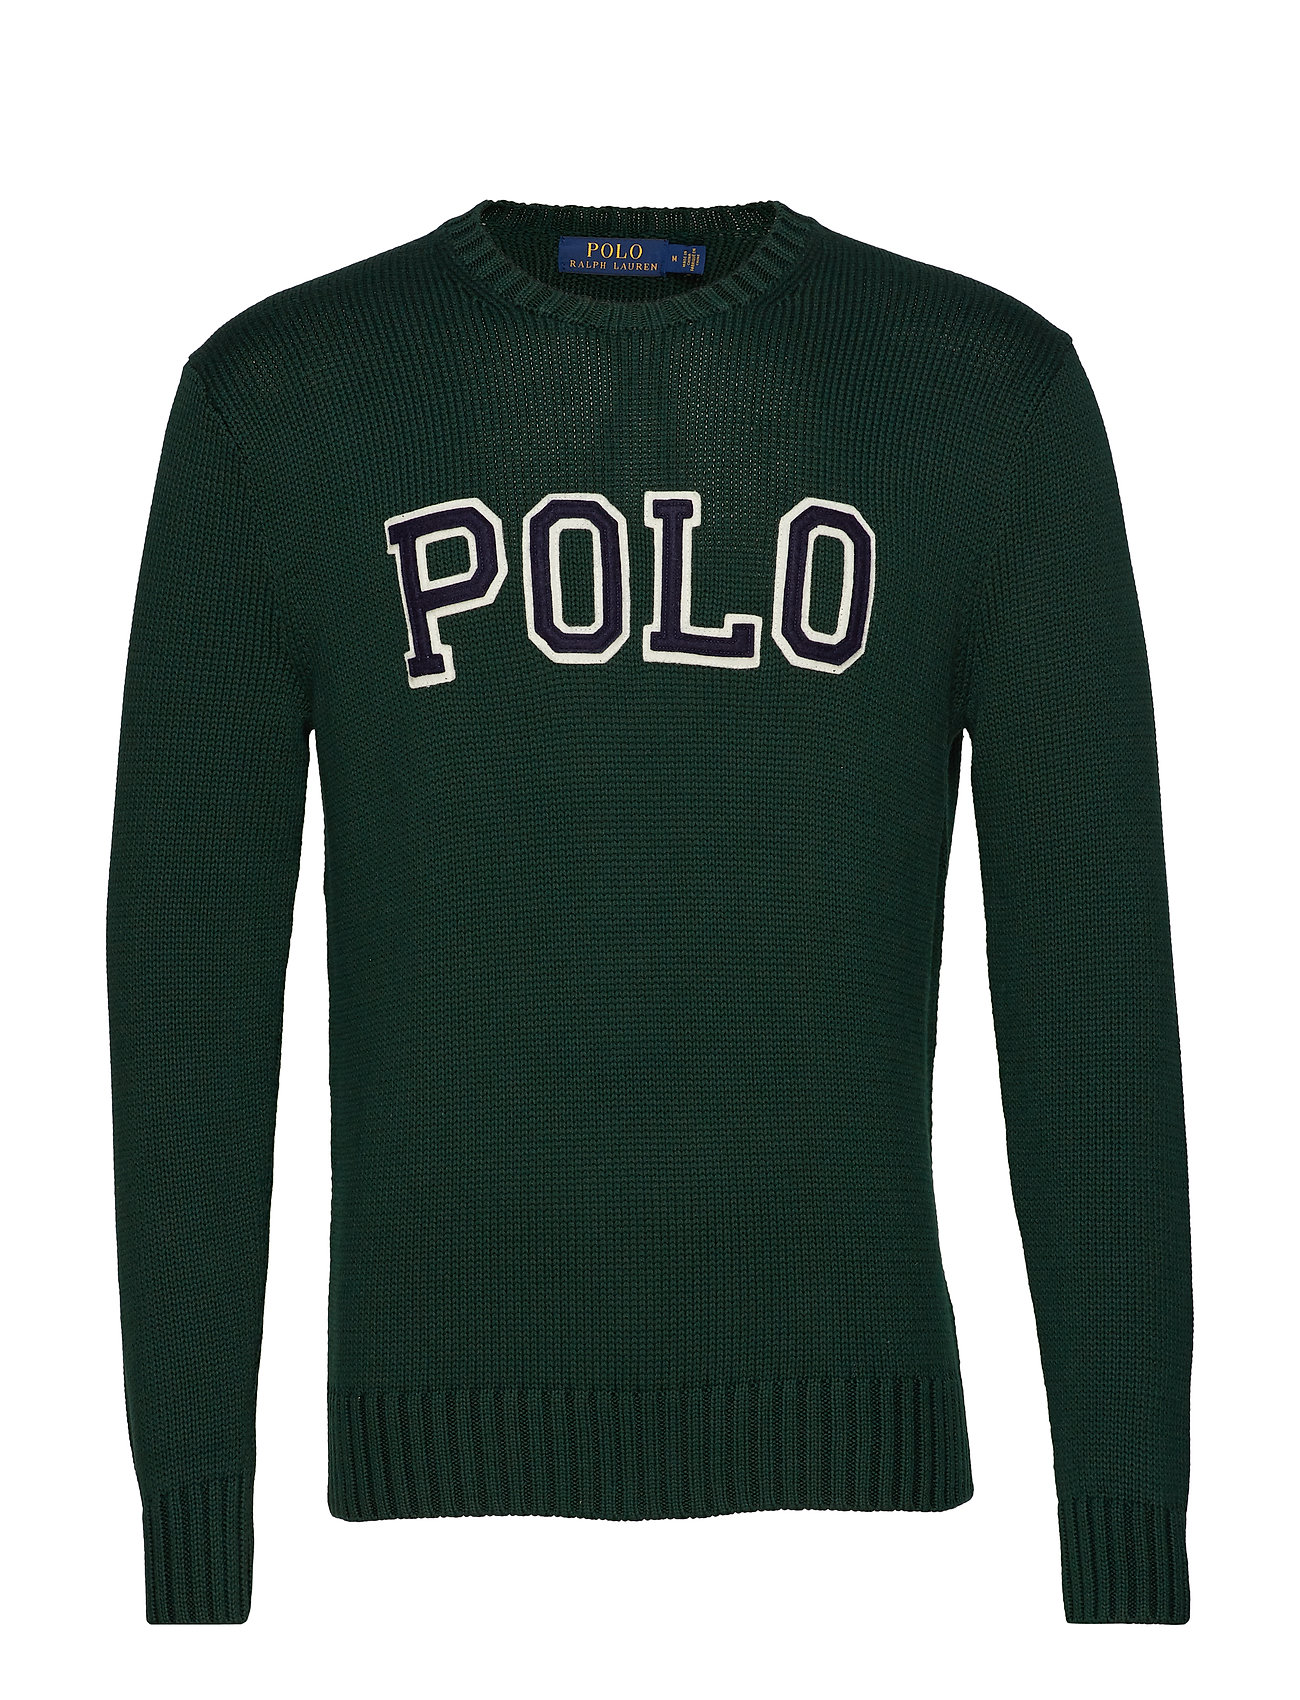 Polo Ralph Lauren Cotton Crewneck Sweater - COLLEGE GREEN/NAV